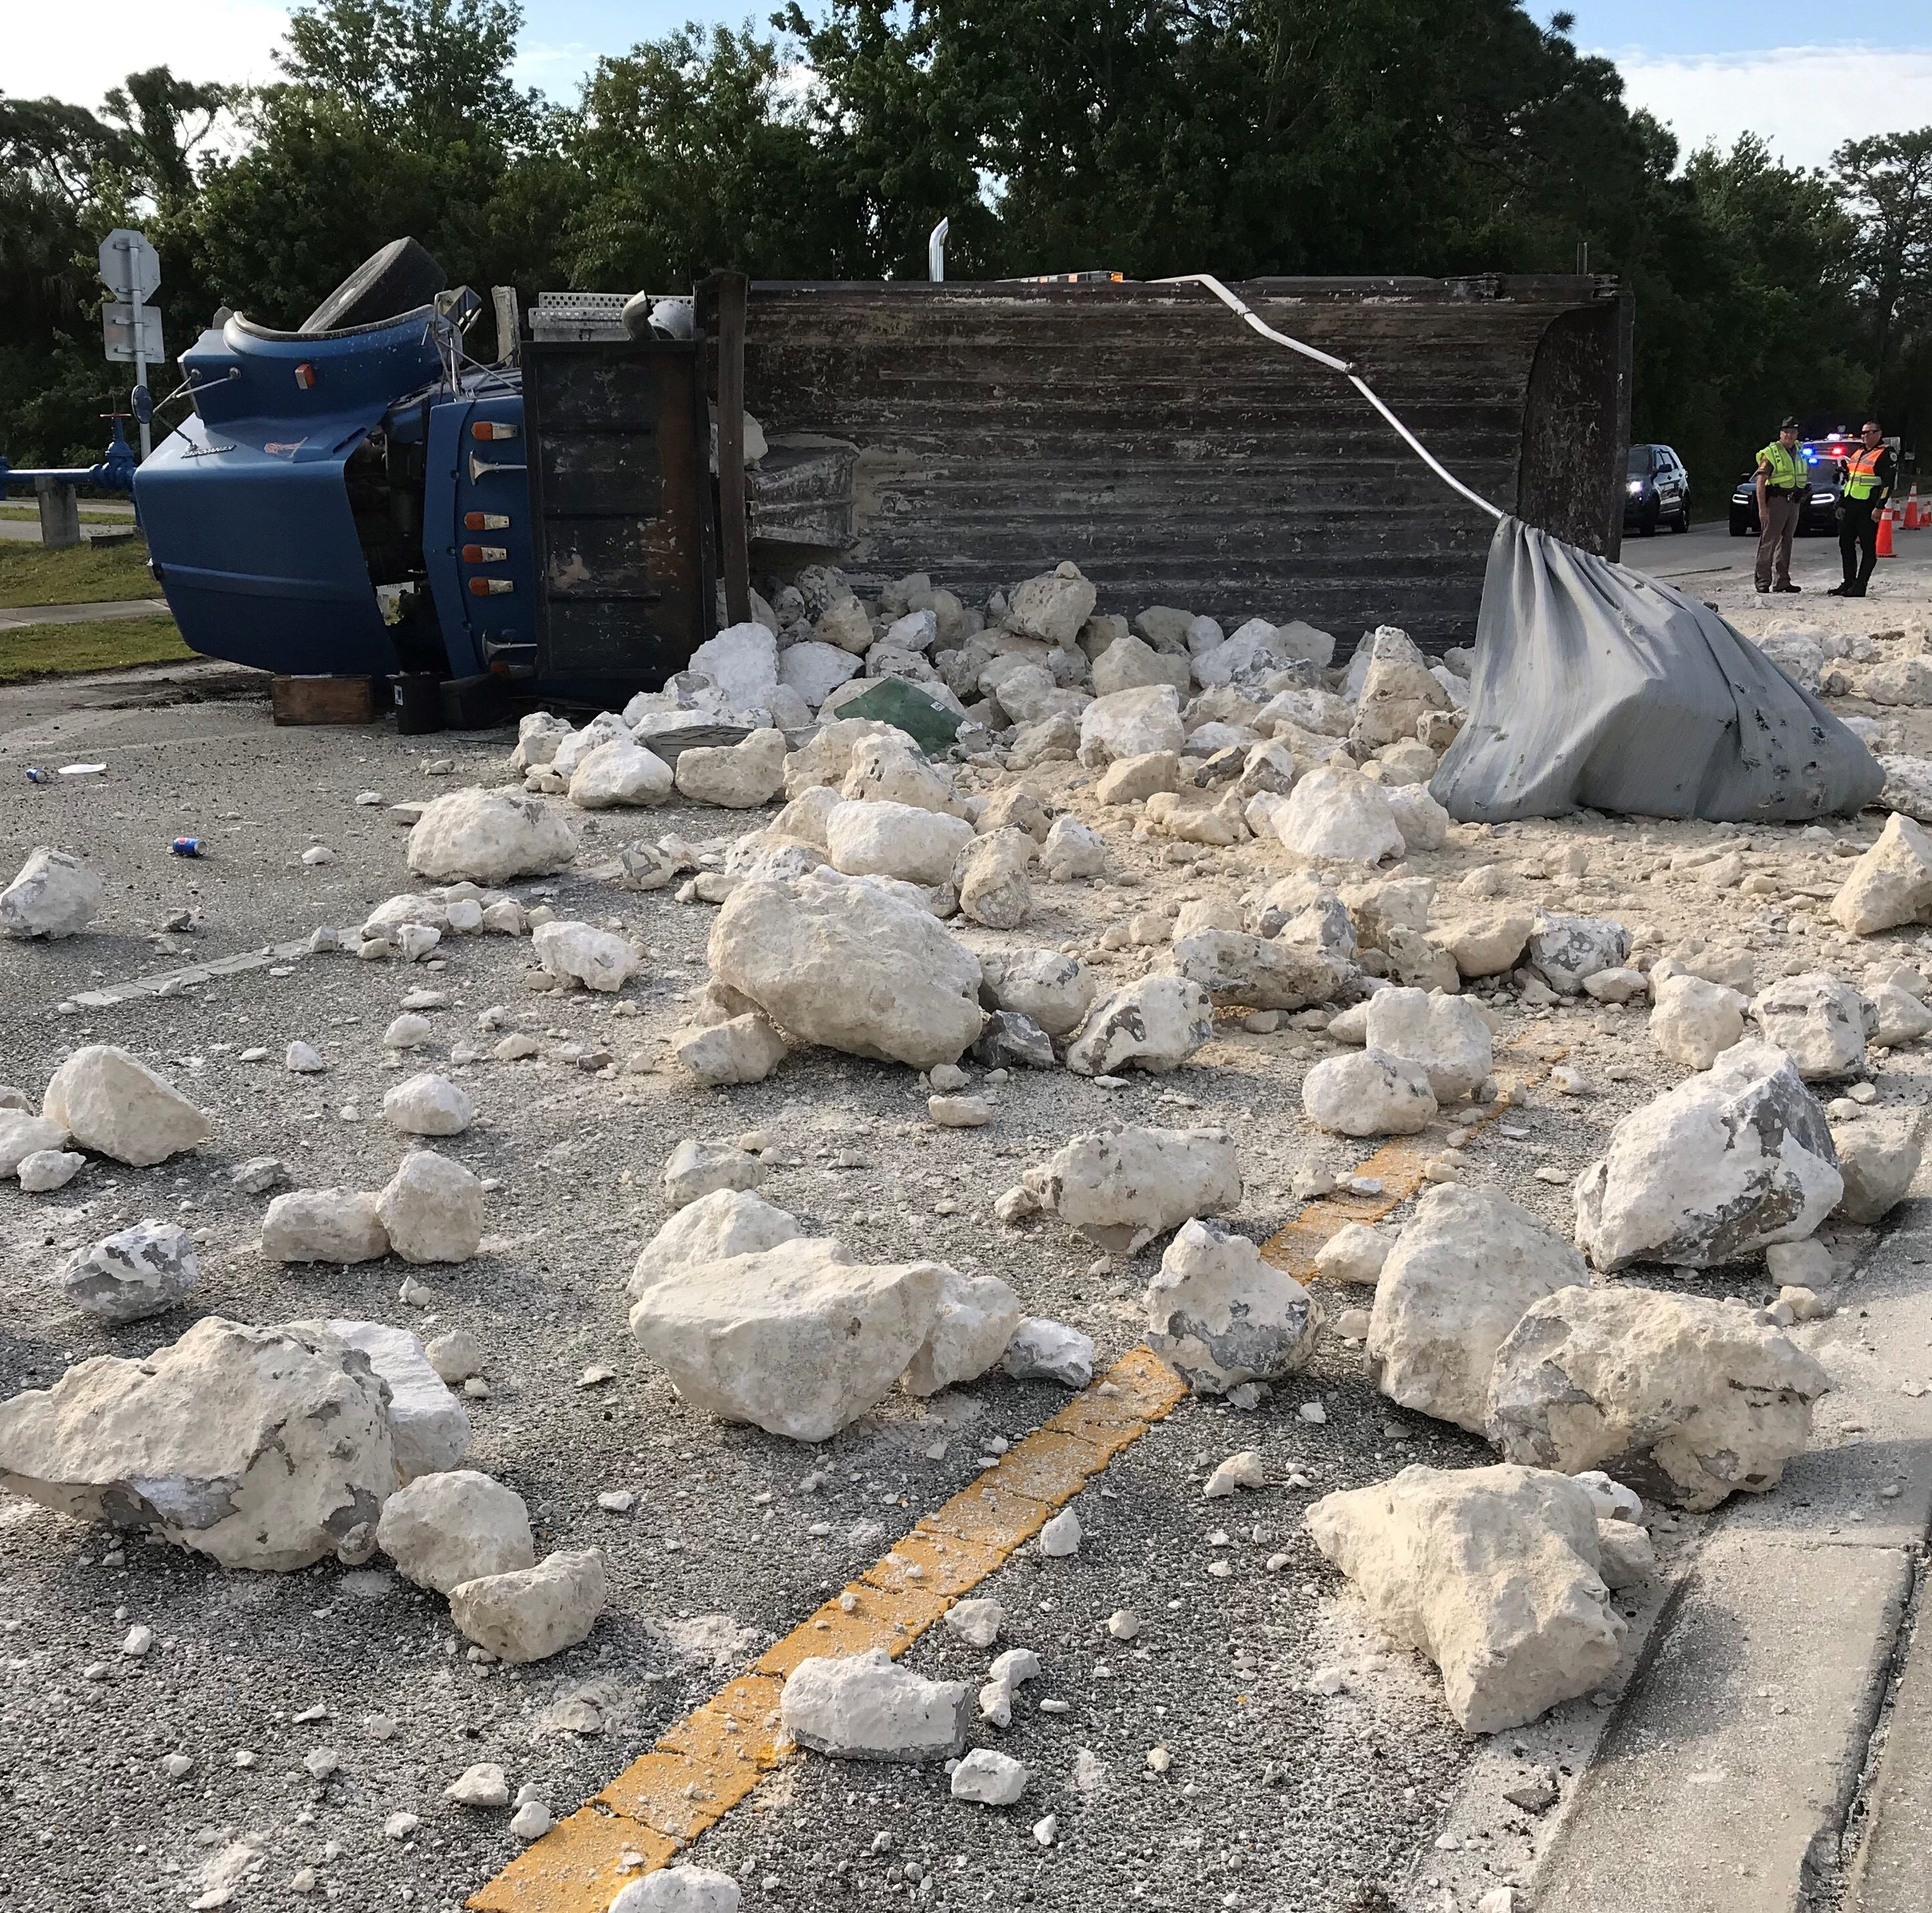 Dump truck flips over on Merritt Island, scatters rocks along roadway